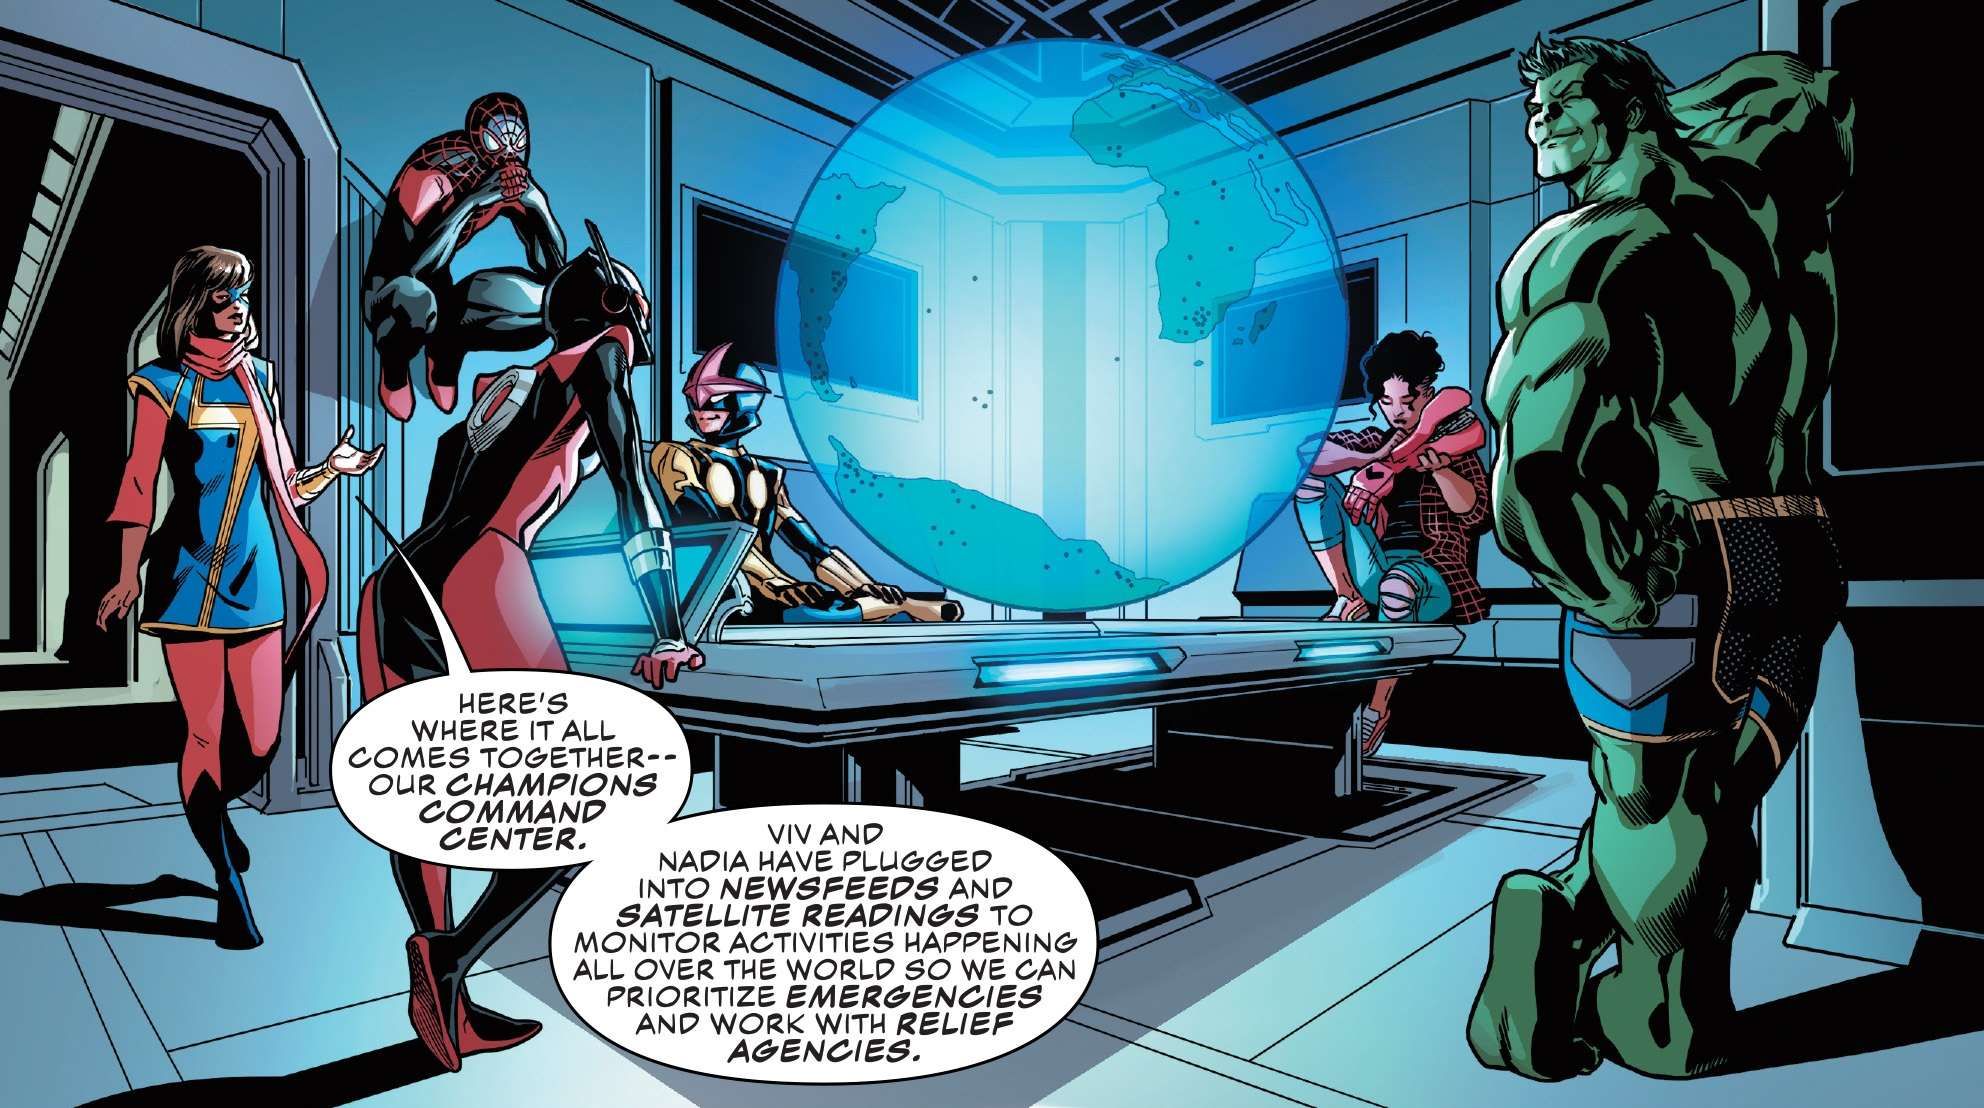 Champions Mobile Bunker from Champions Vol 2 19 003.jpg